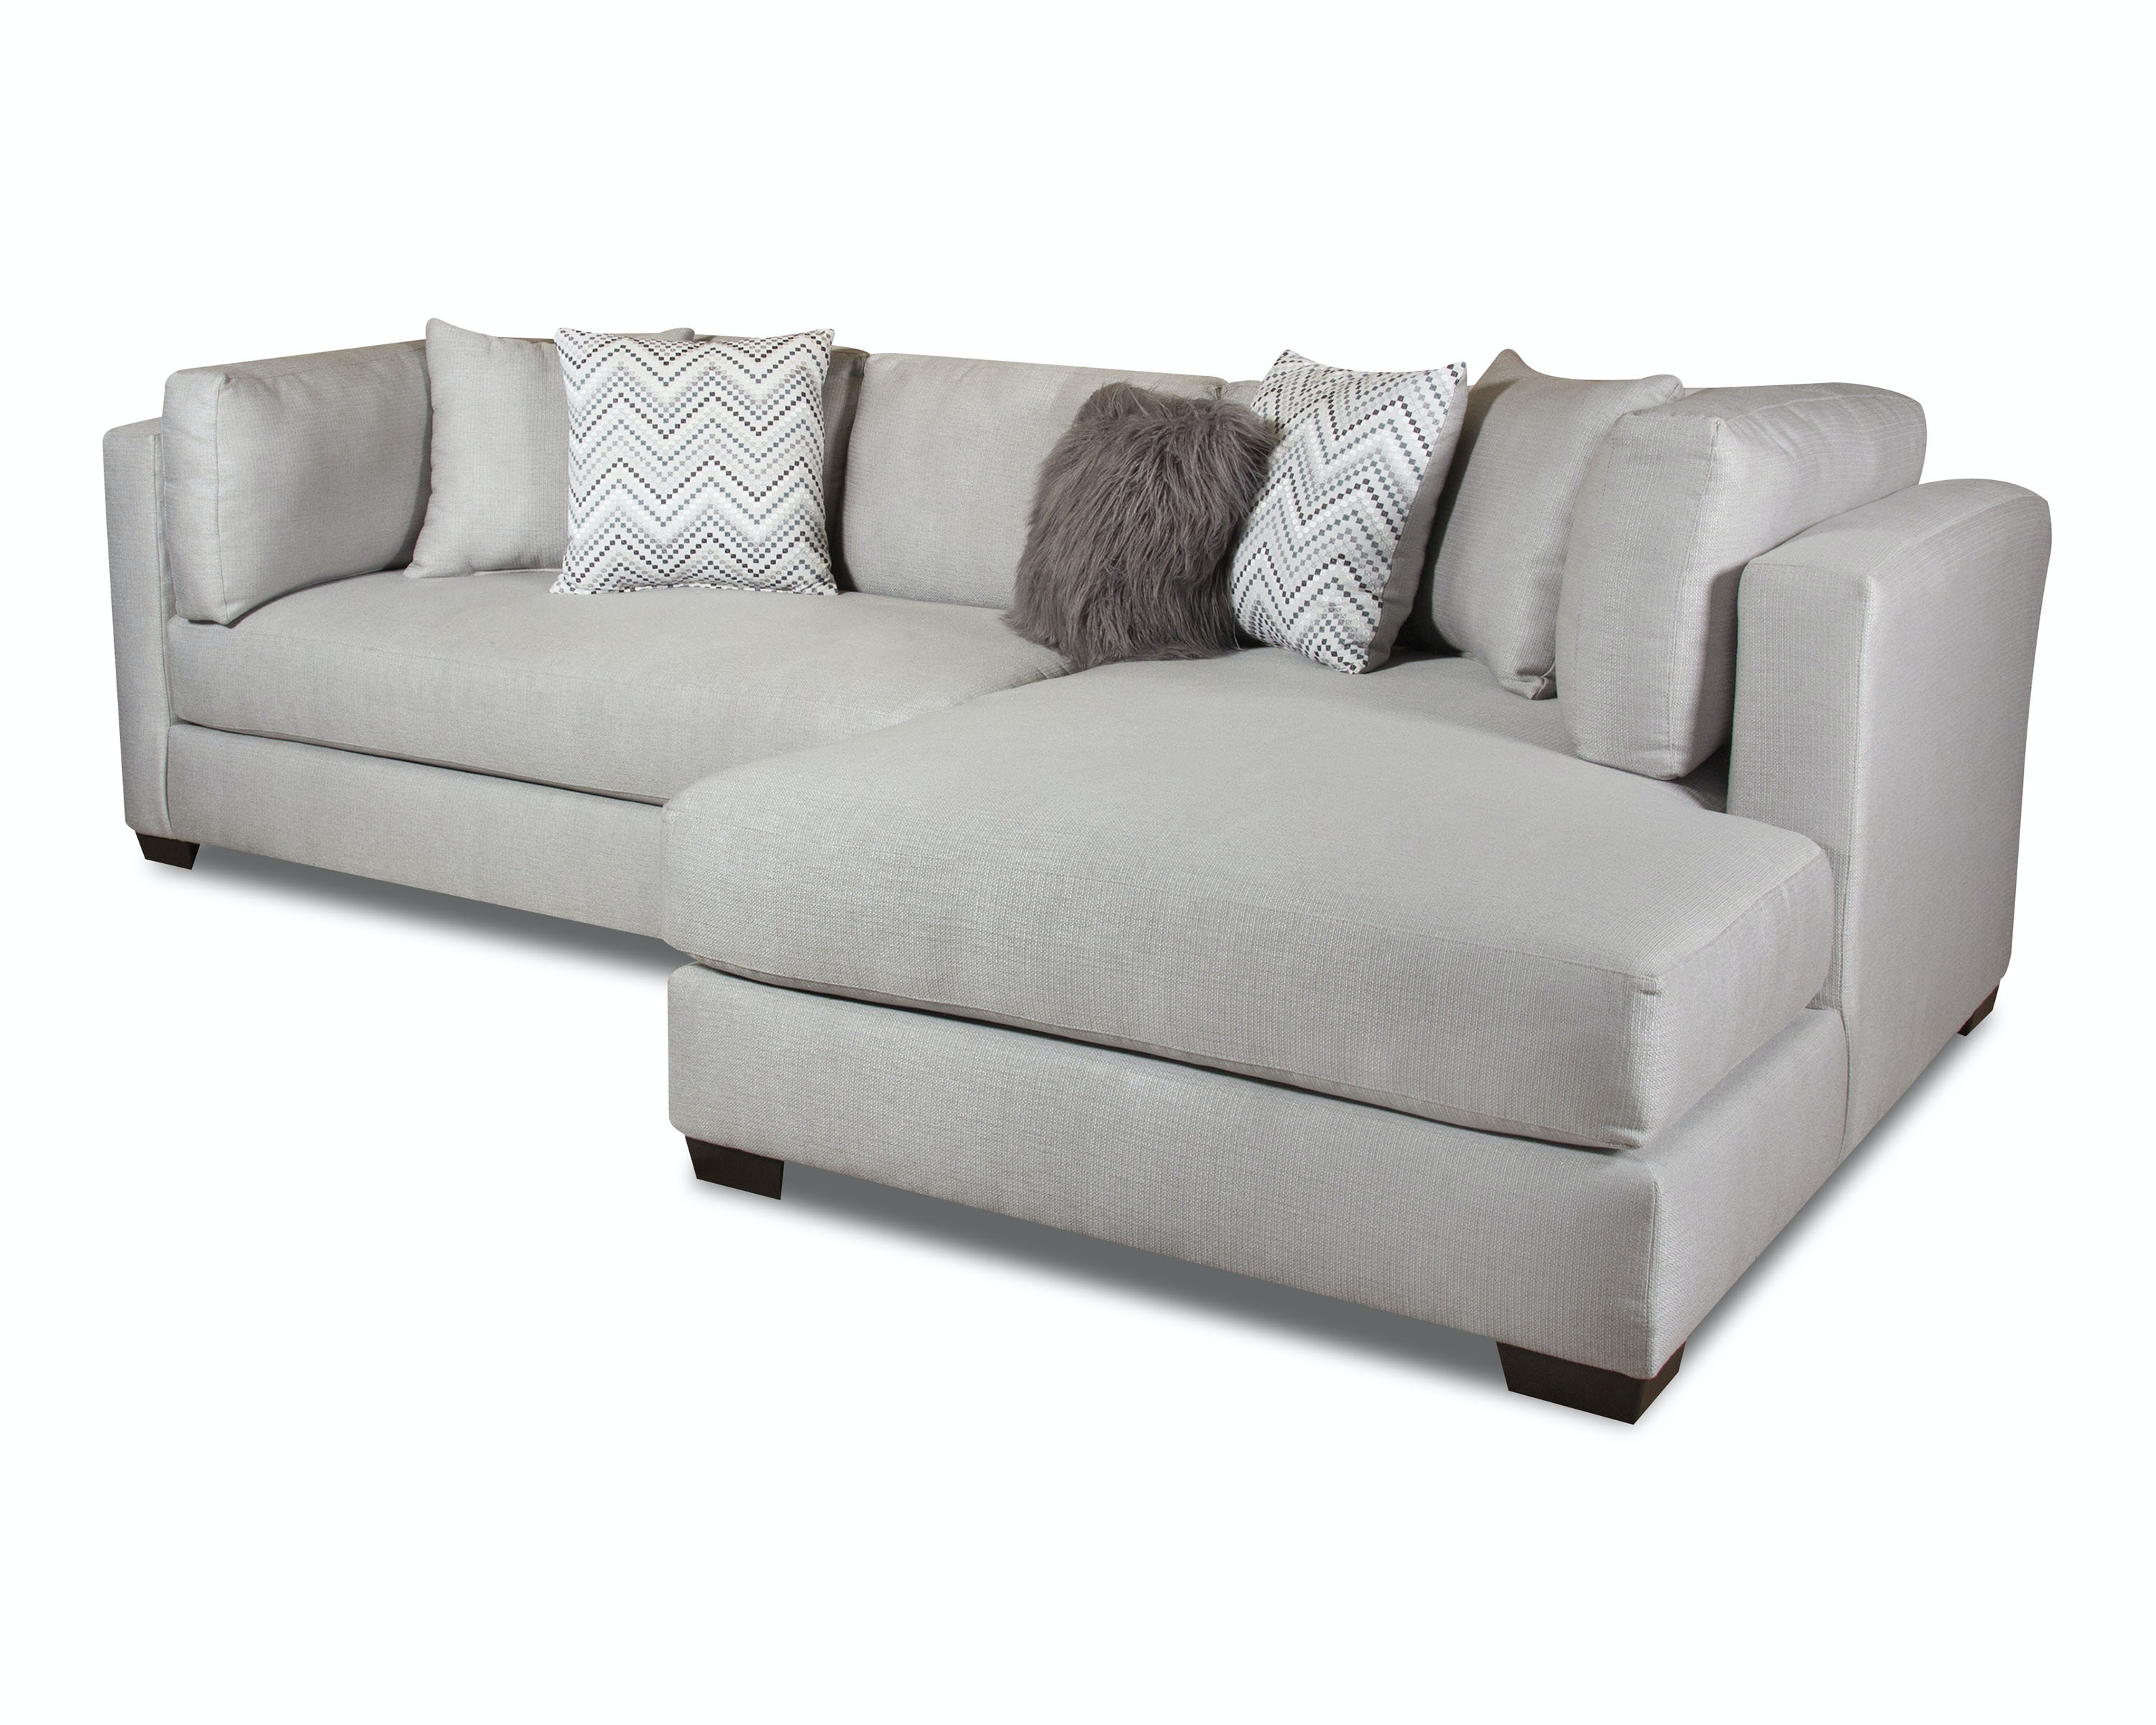 american furniture living room sectionals light grey laminate flooring sectional 756517 19 talsma